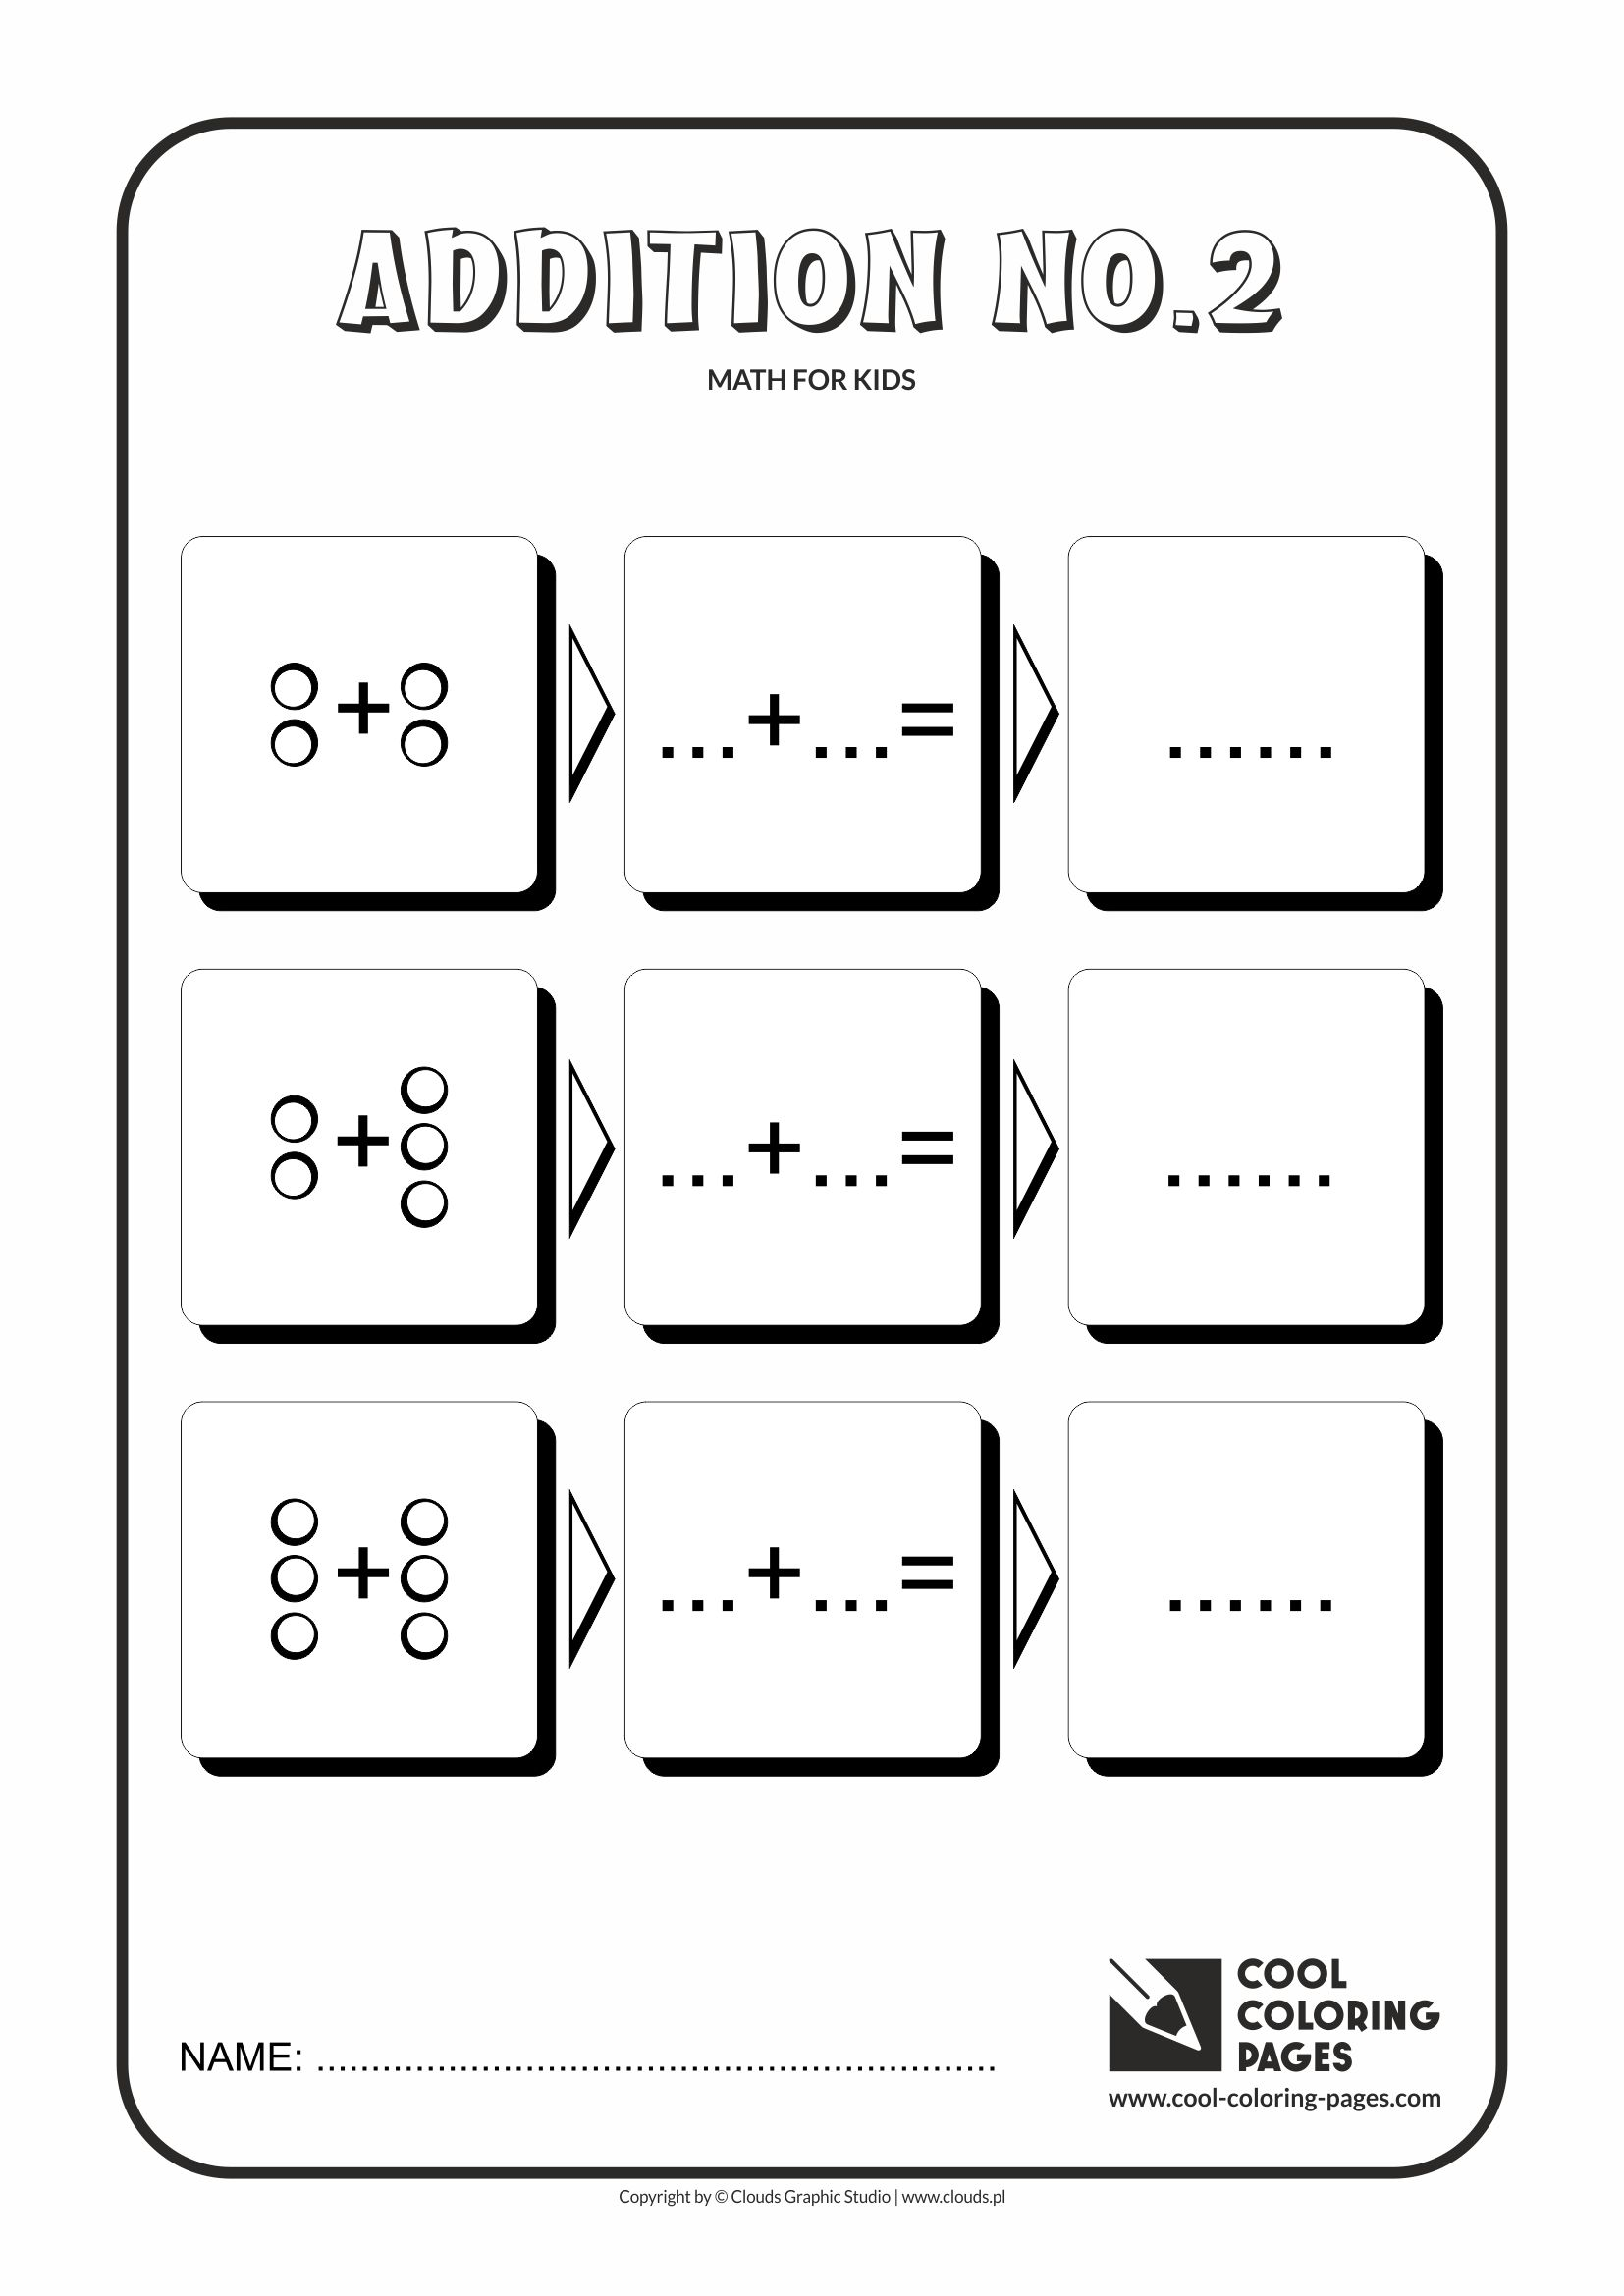 Cool Coloring Pages Math For Kids